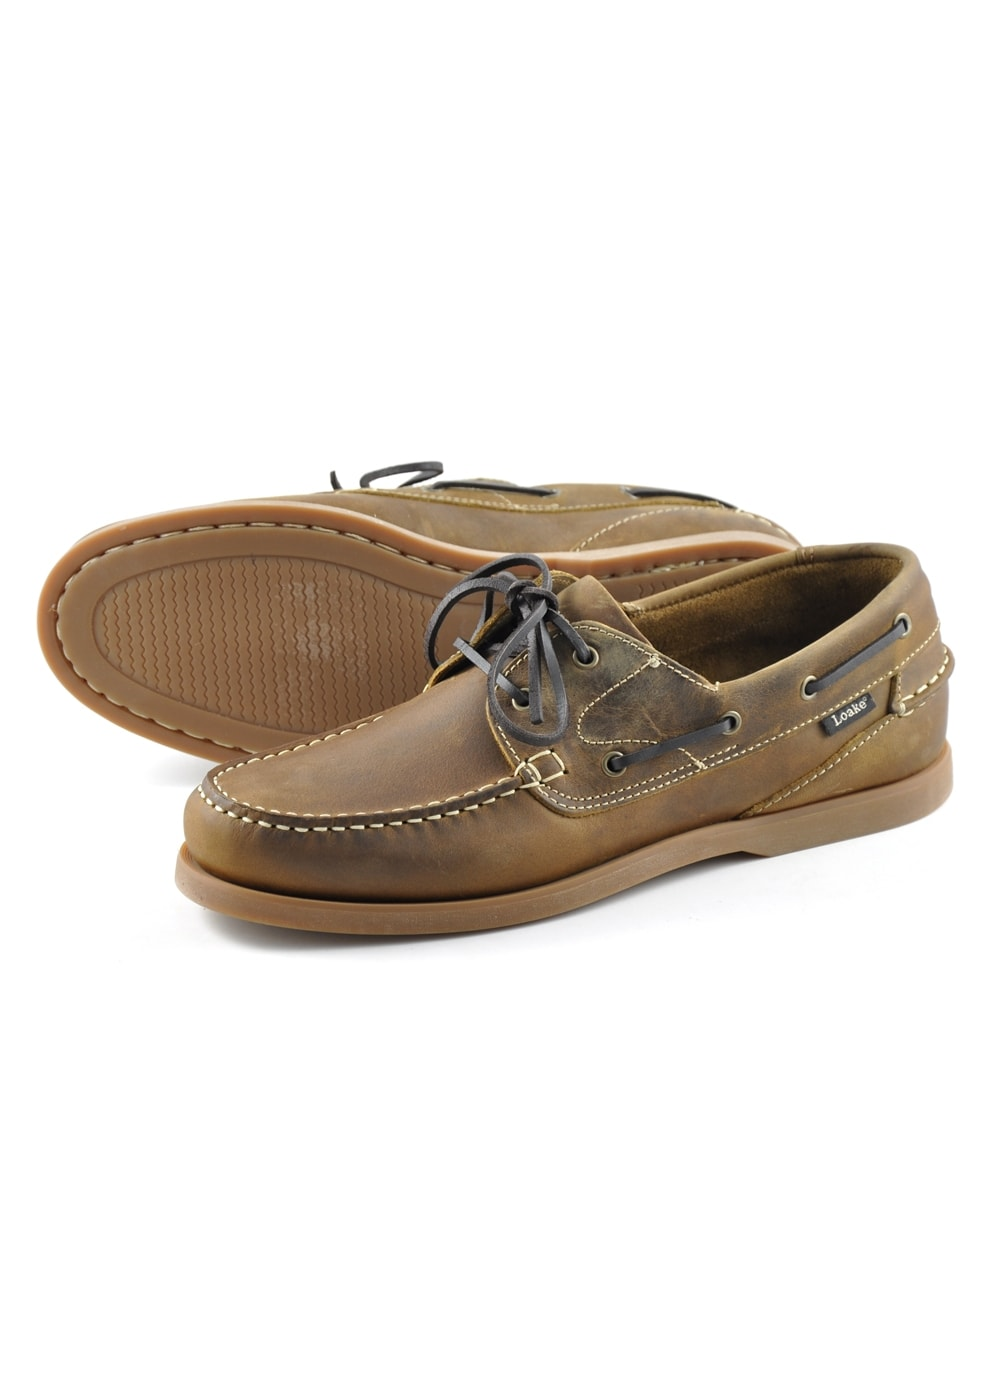 a189bb6ff Loake Lymington Boat Shoes - Mens from A Hume UK